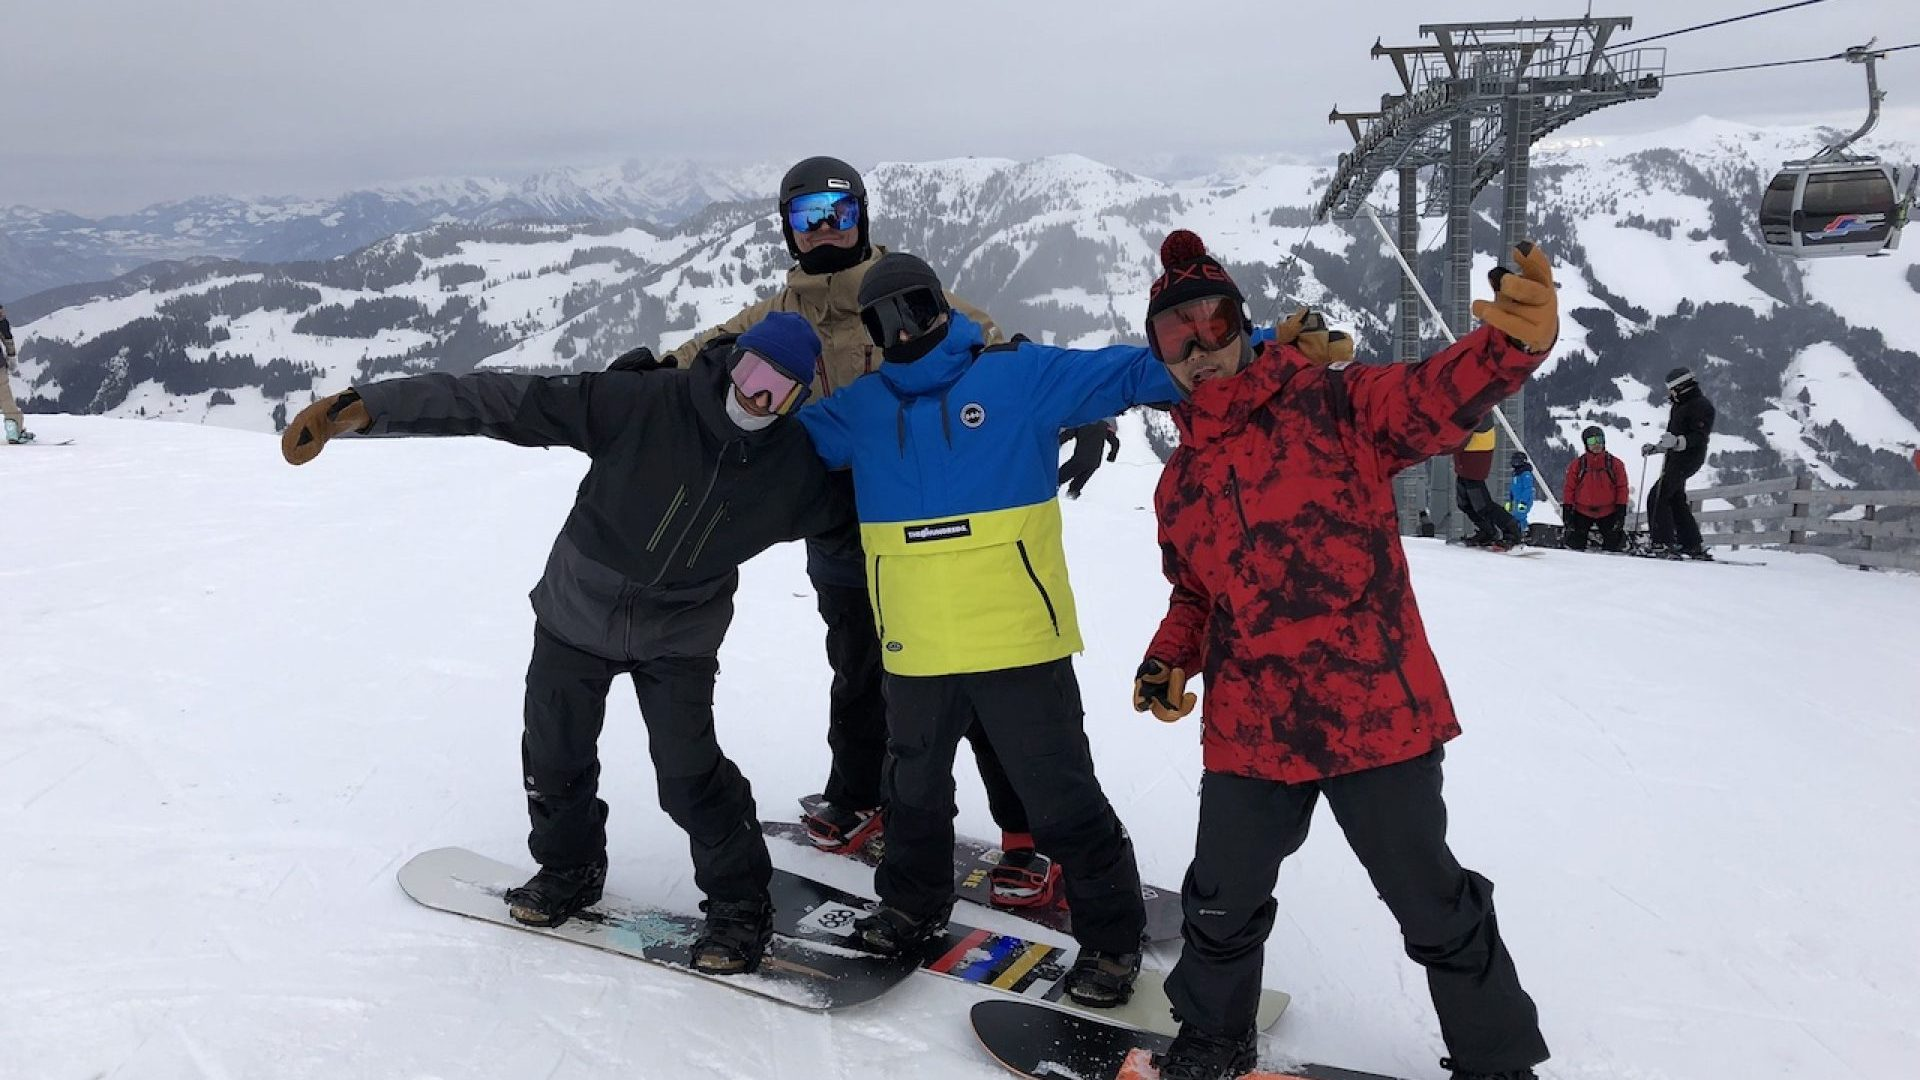 686 boys on the hill. Brent, Stephane, Pacome & Founder, Mike West